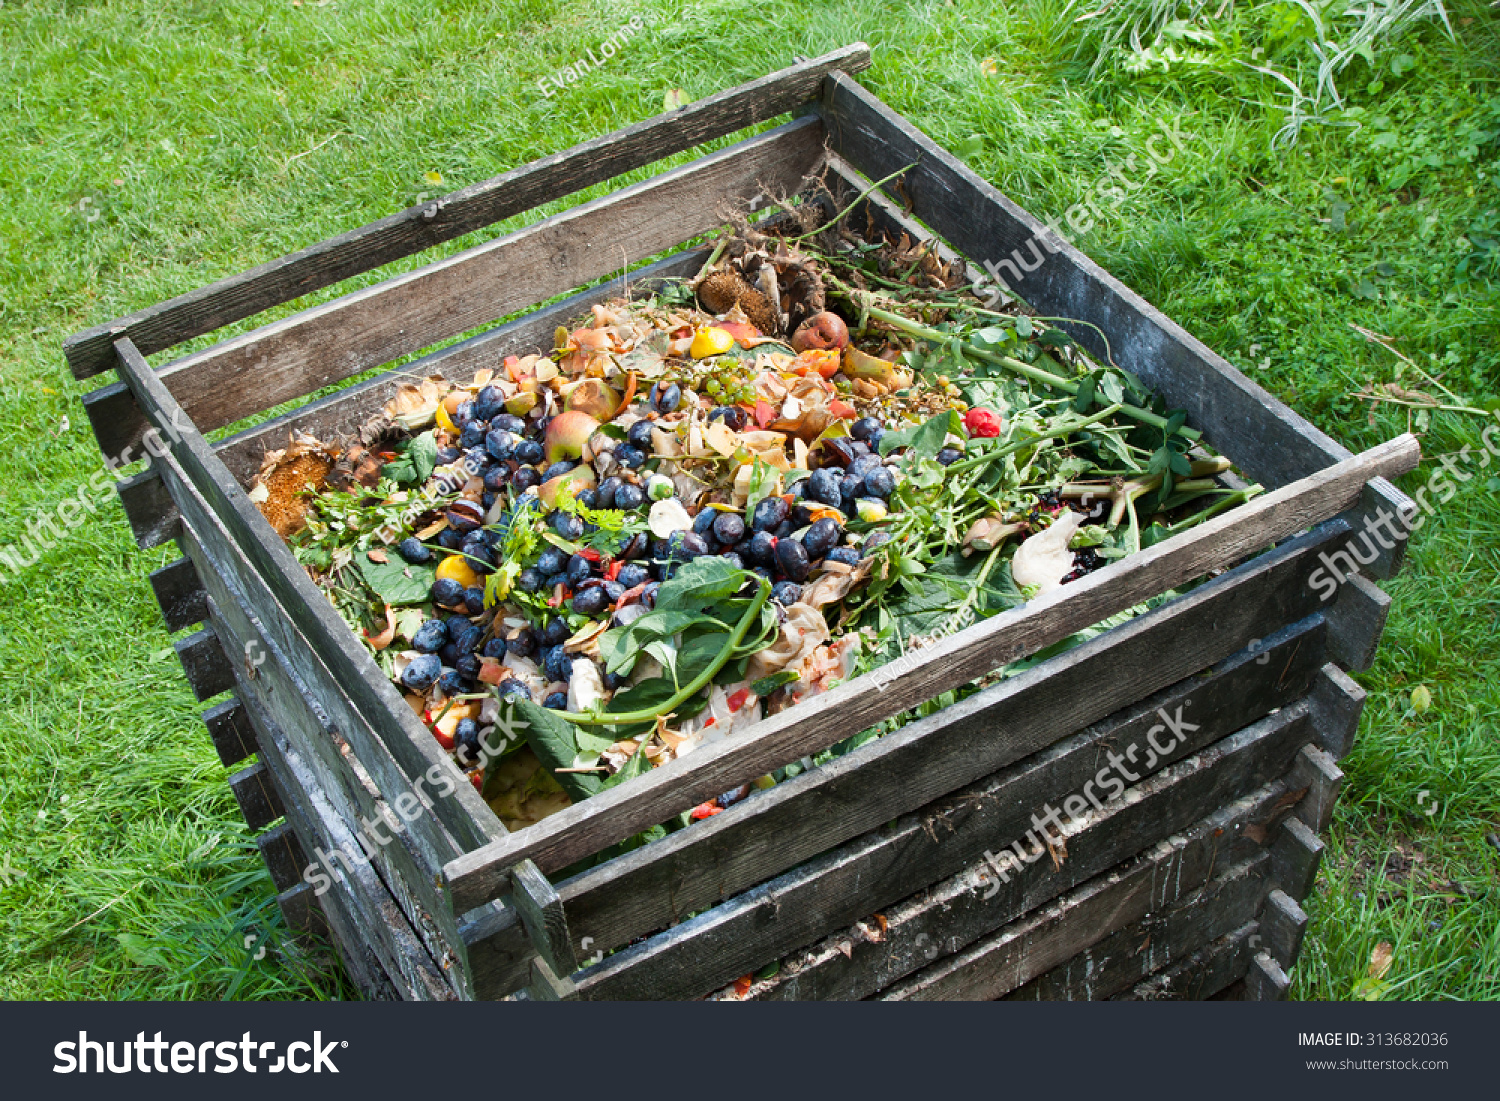 Compost Bin Garden Composting Pile Rotting Stock Photo 313682036